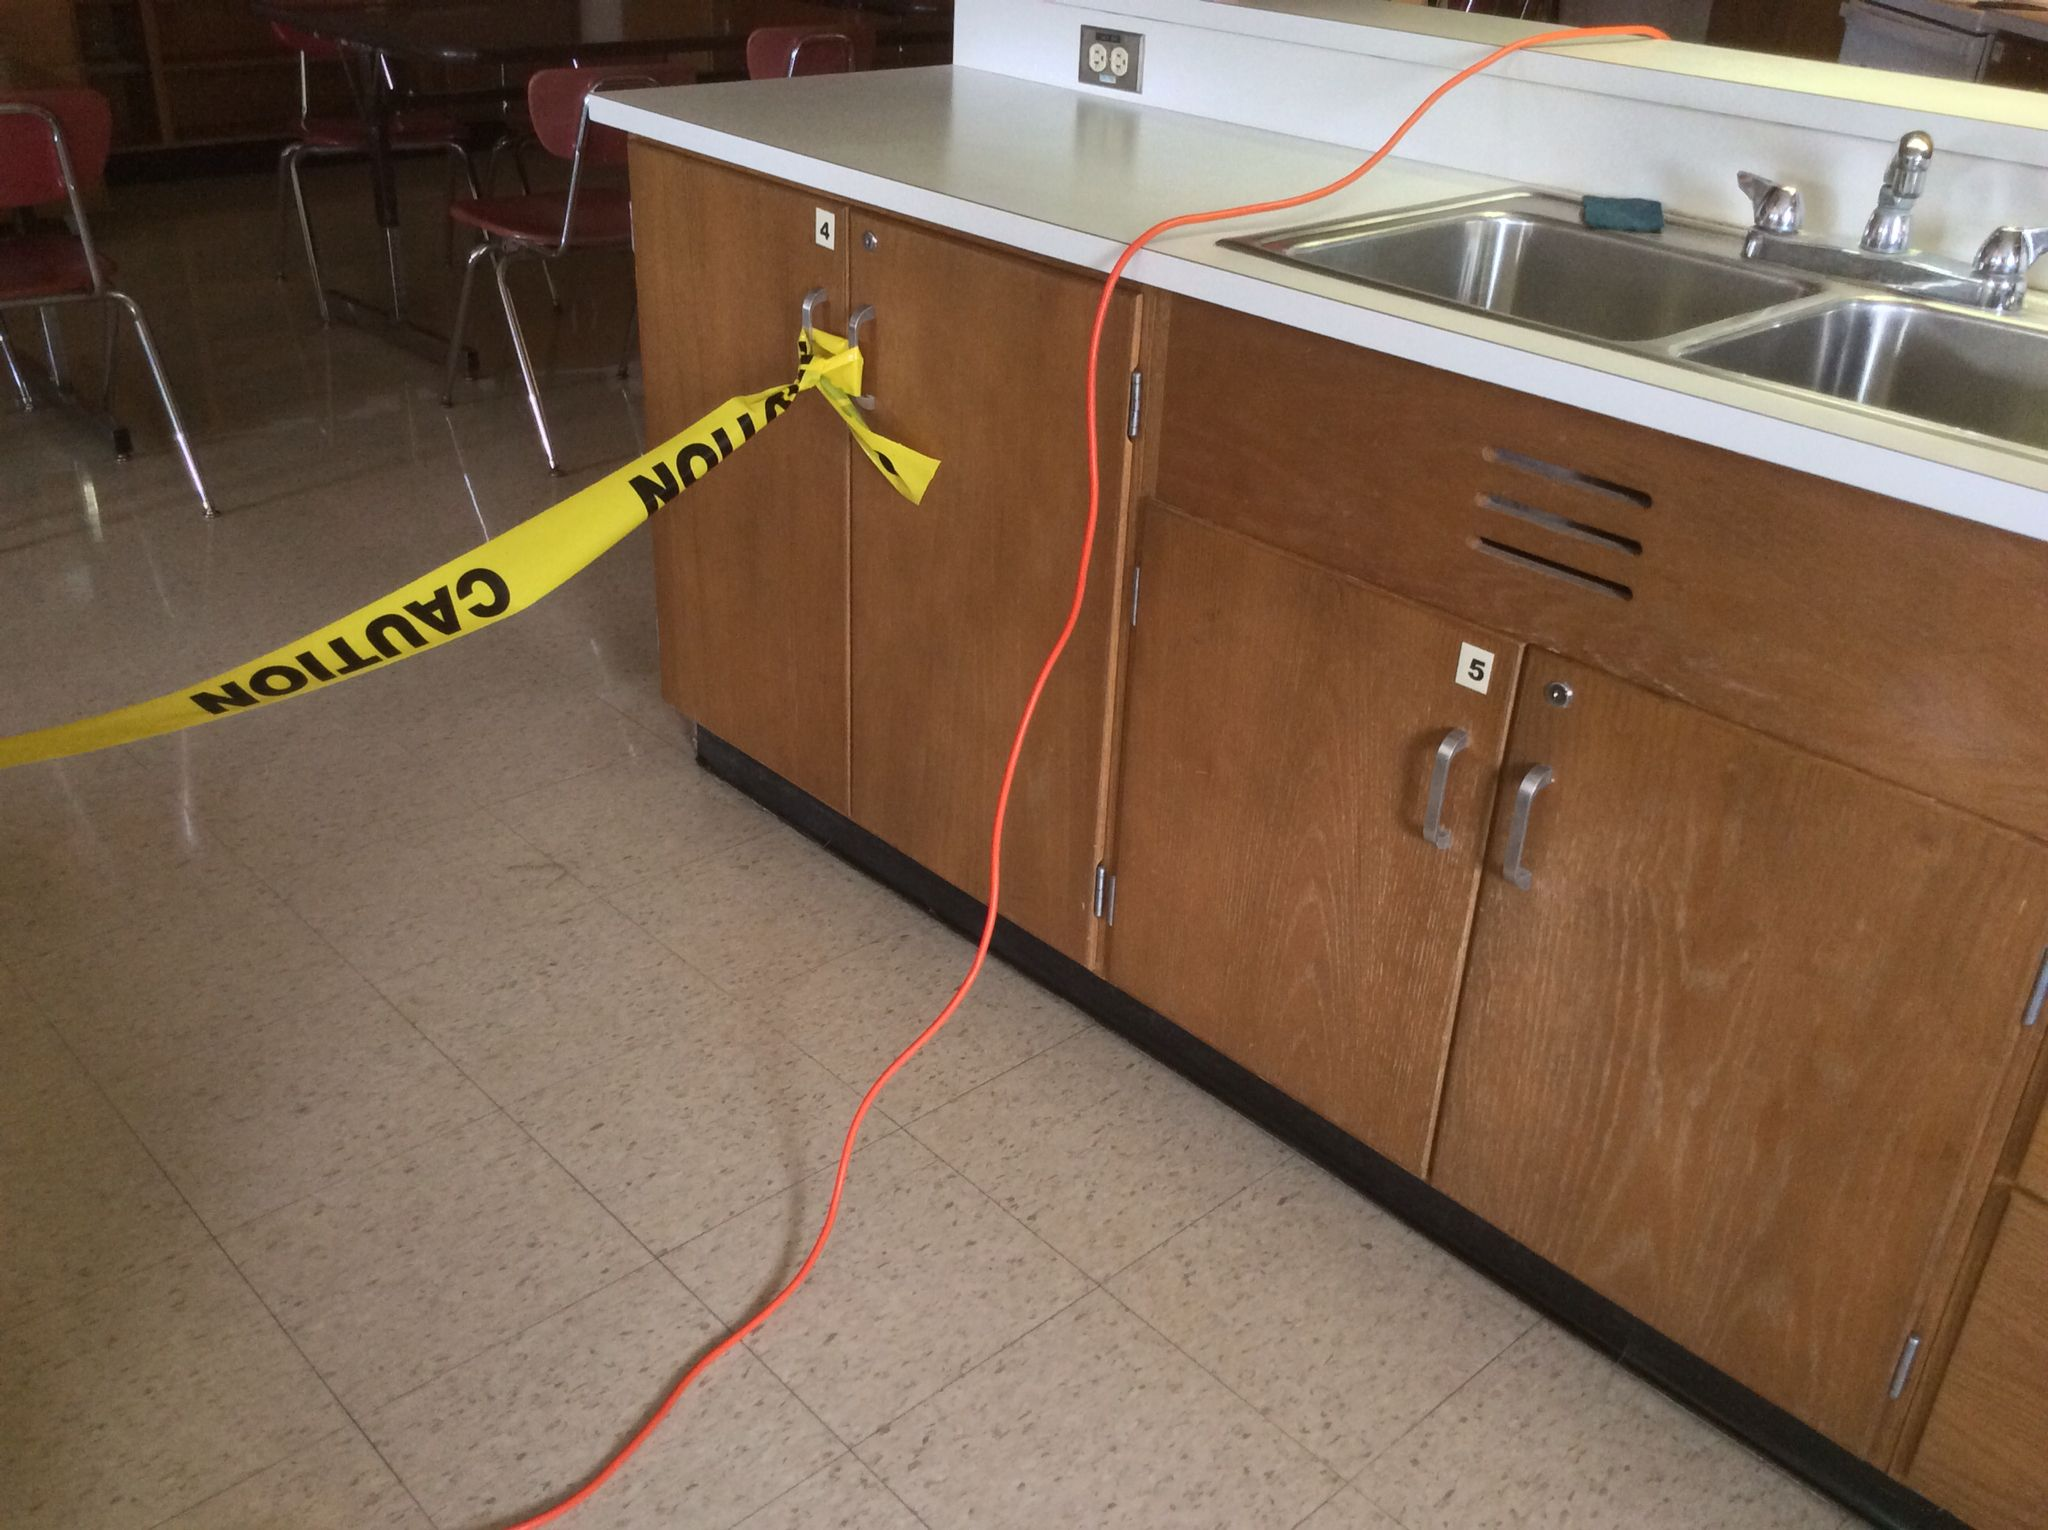 Extension Cord Over Counter And On Floor With Images